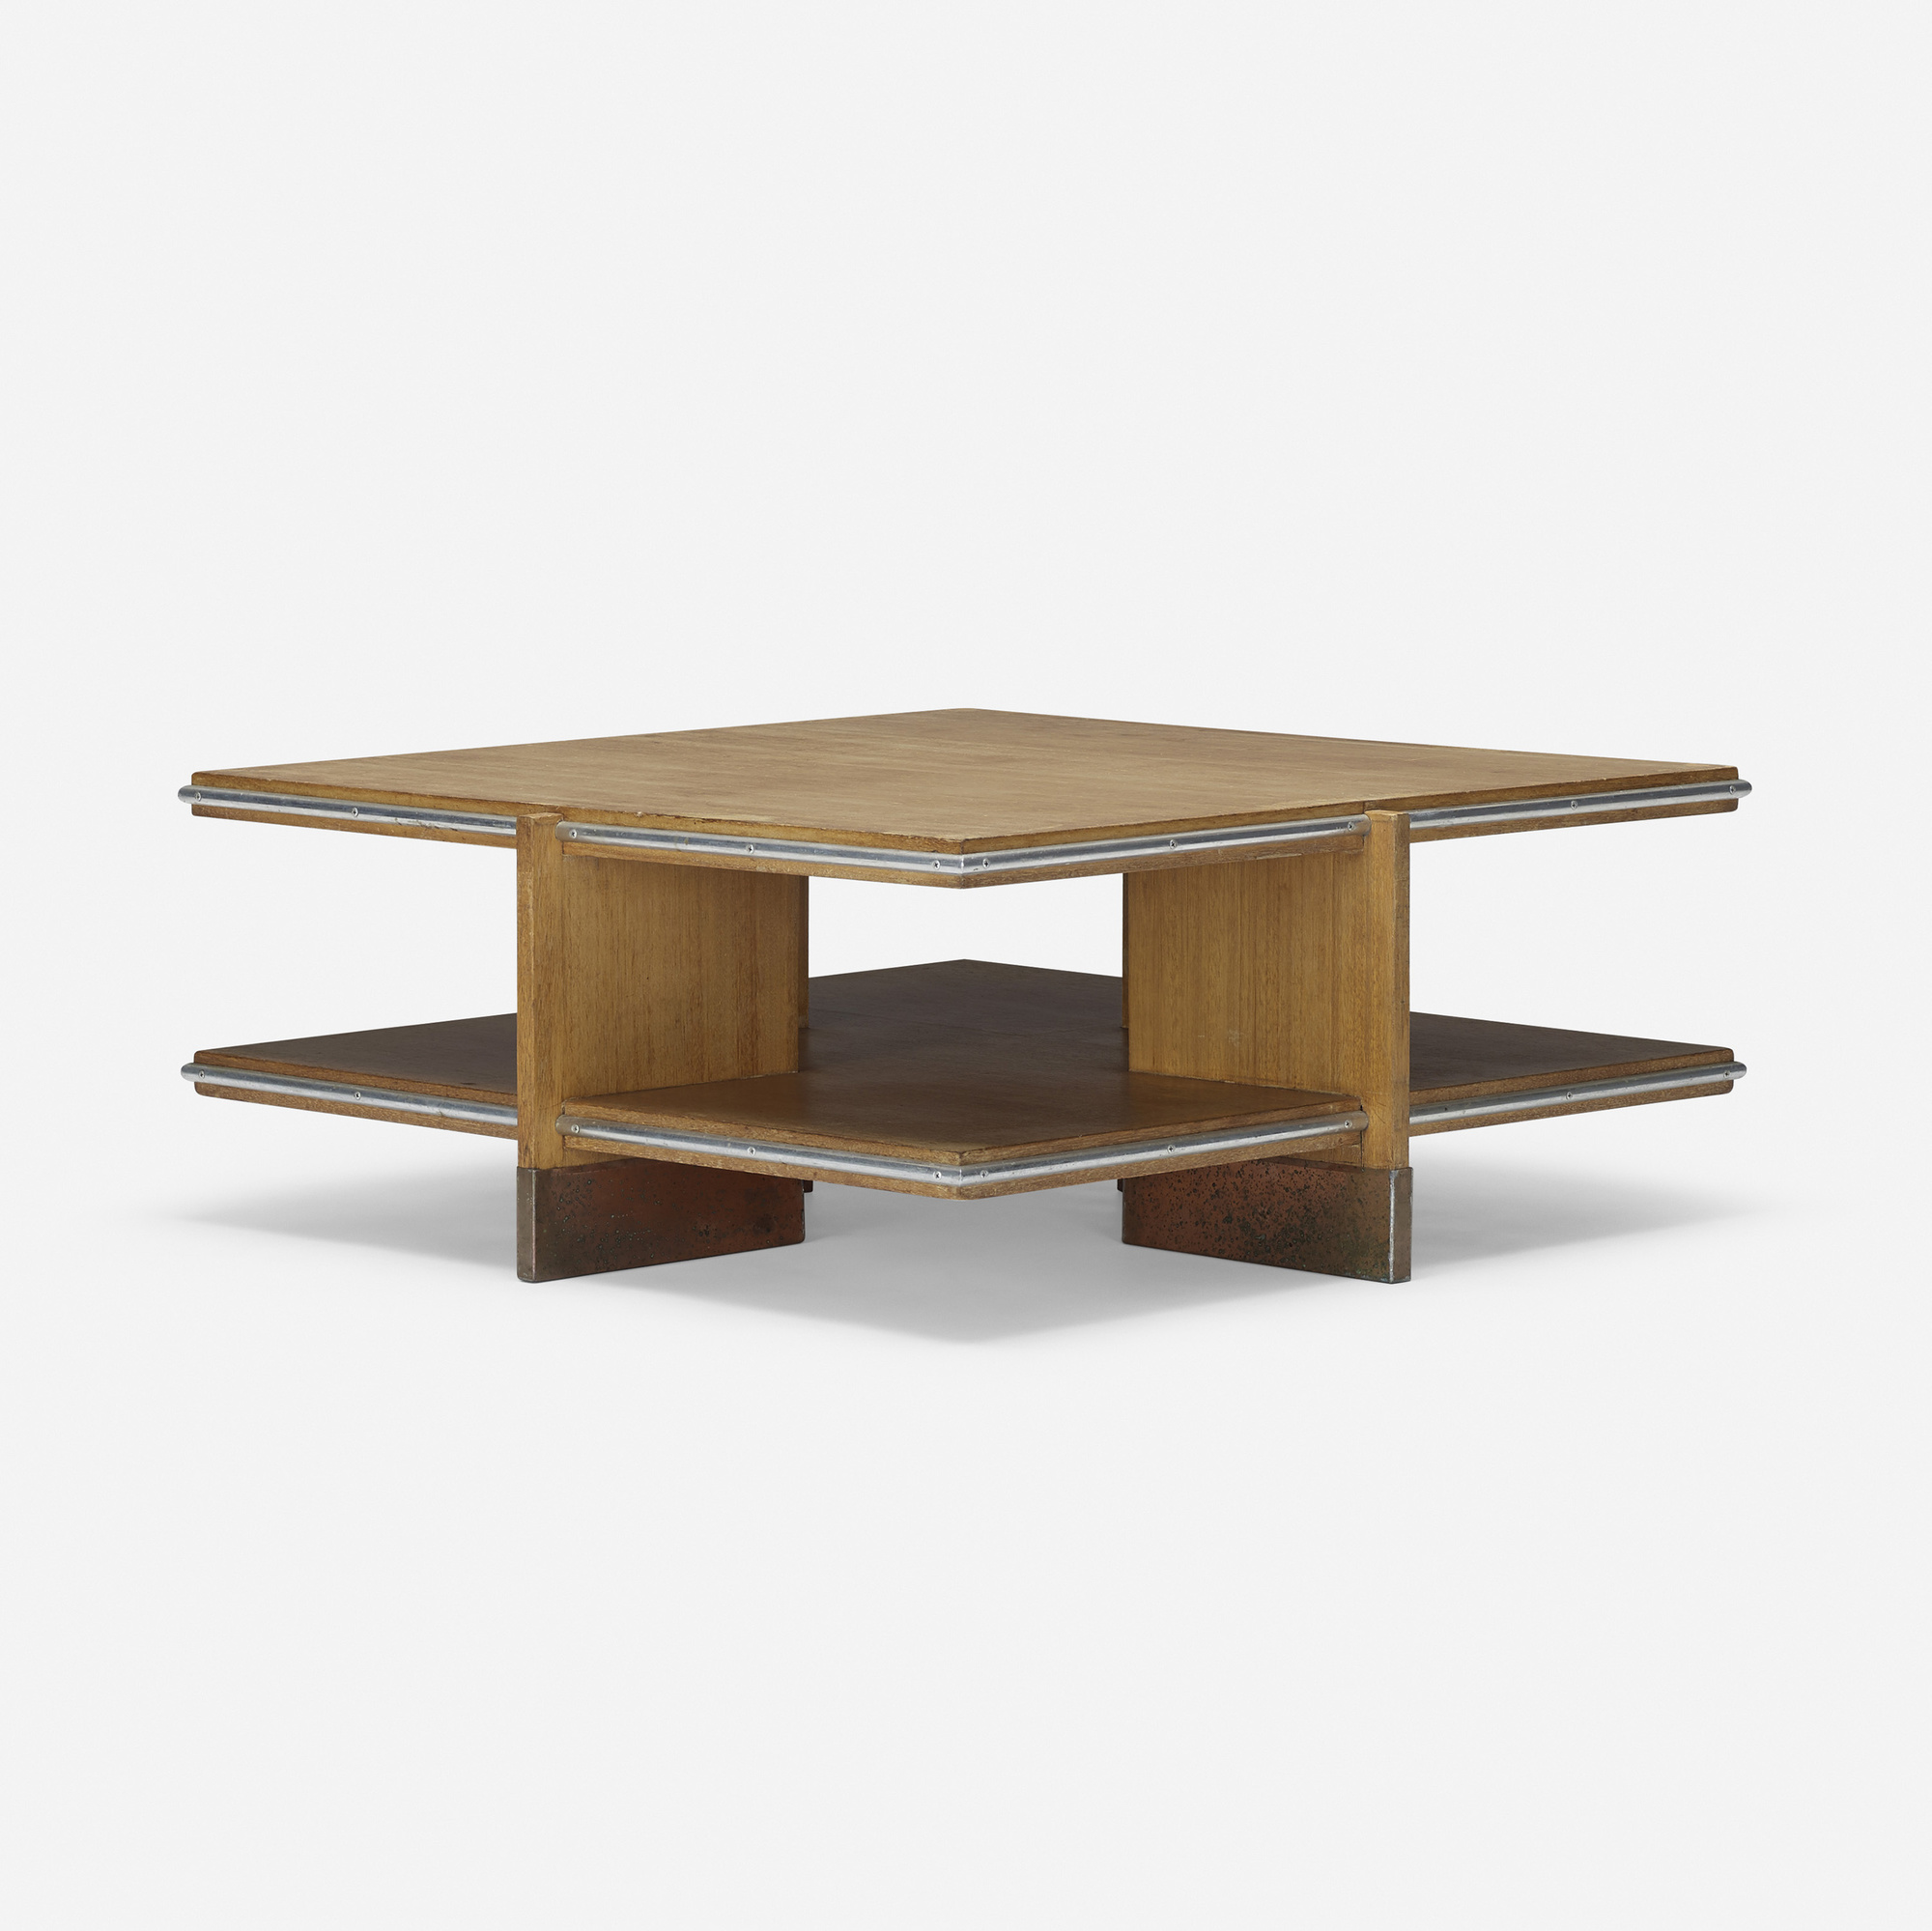 183 Frank Lloyd Wright coffee table from Price Tower